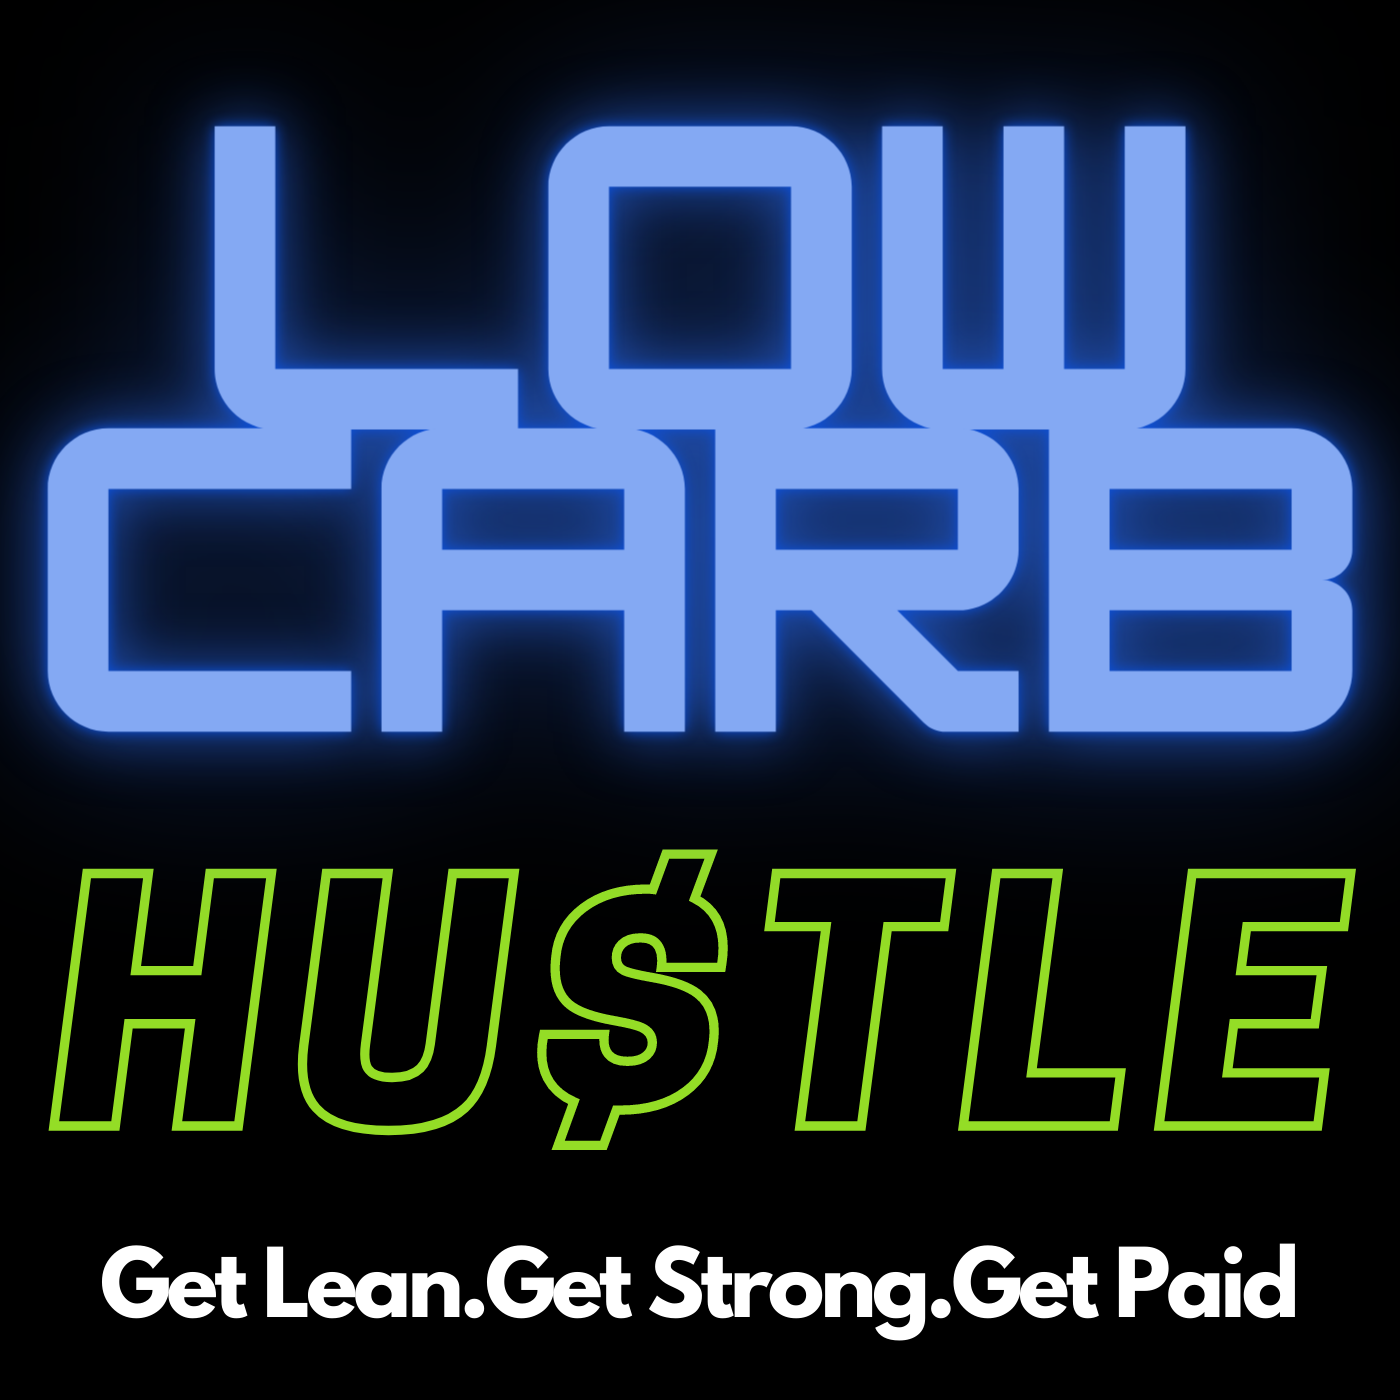 The Low Carb Hustle Podcast show art